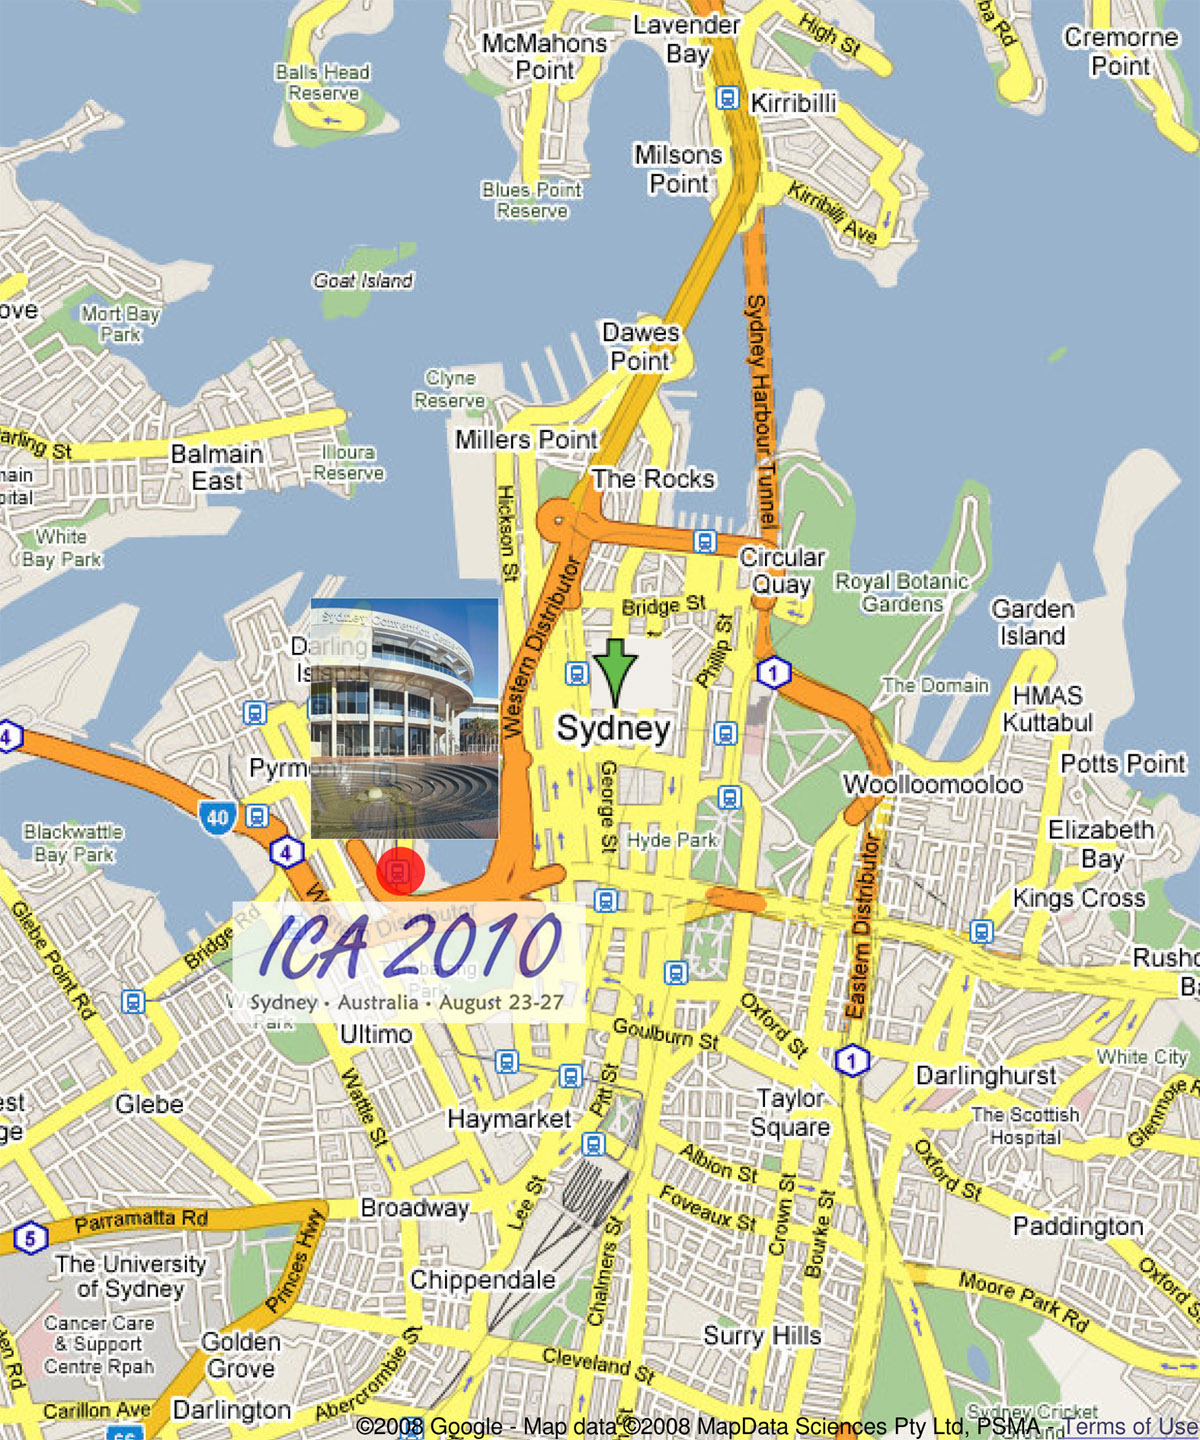 dating venues sydney Gay sydney travel guide 2018 with maps and listings for all gay bars and beaches, clubs and parties, saunas and cruising and hotels nearby.